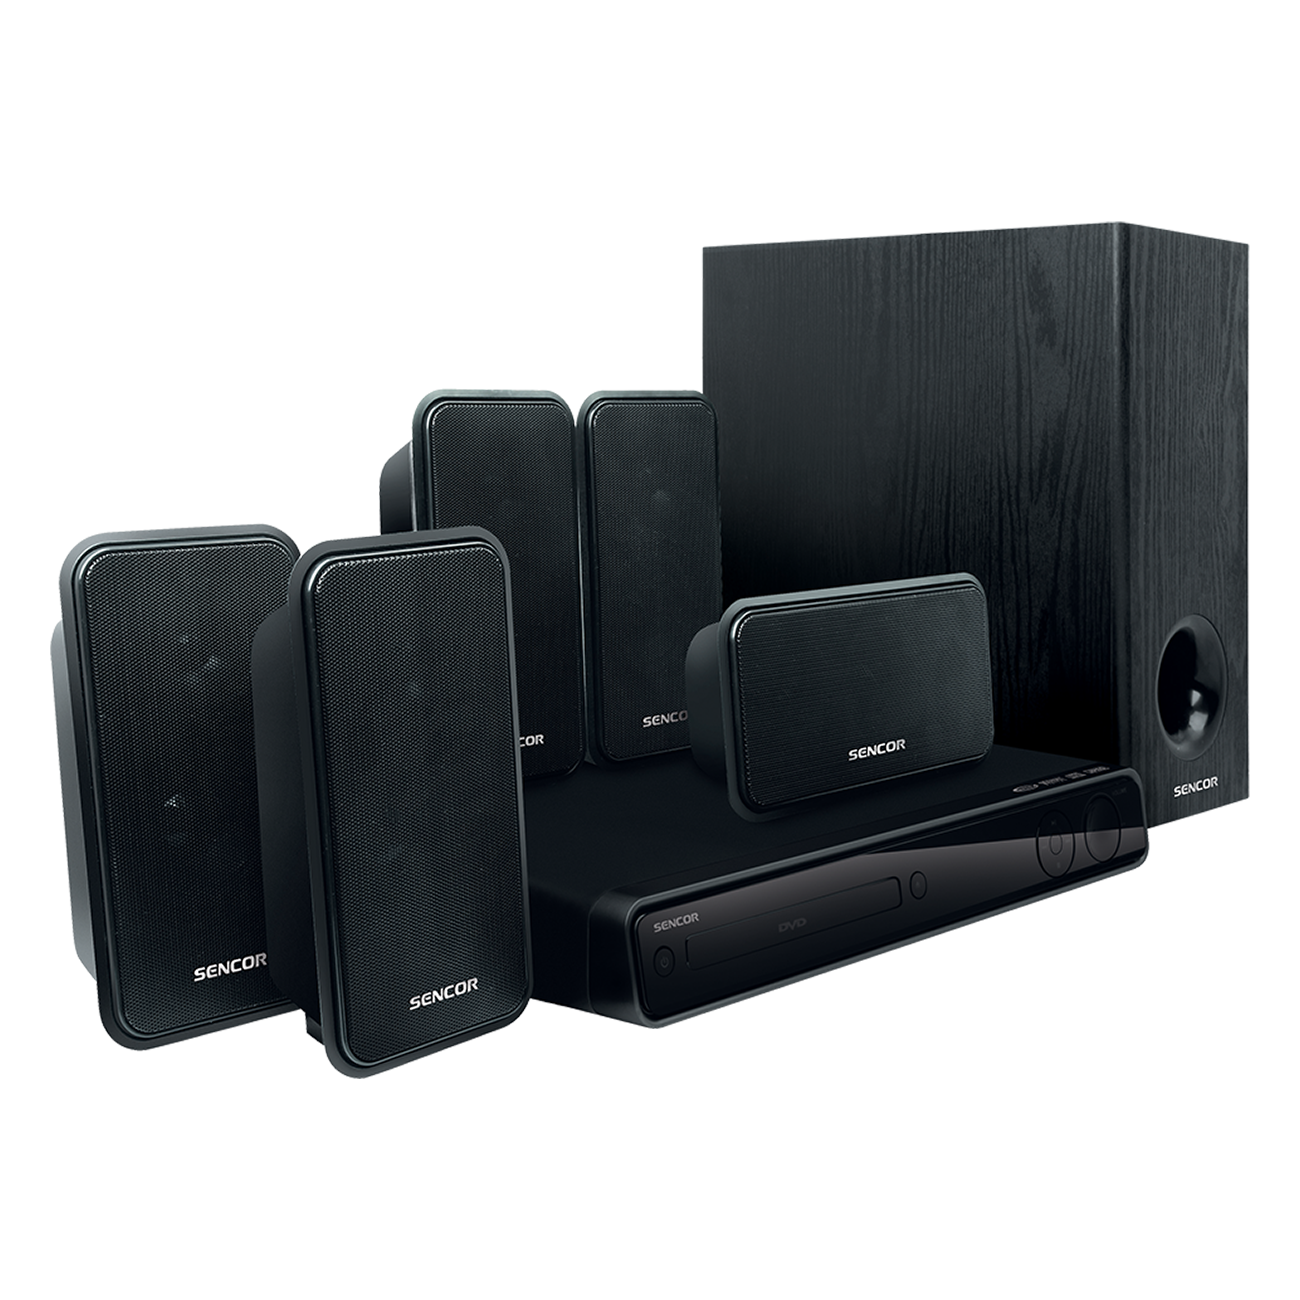 SHC XD140 Home Cinema